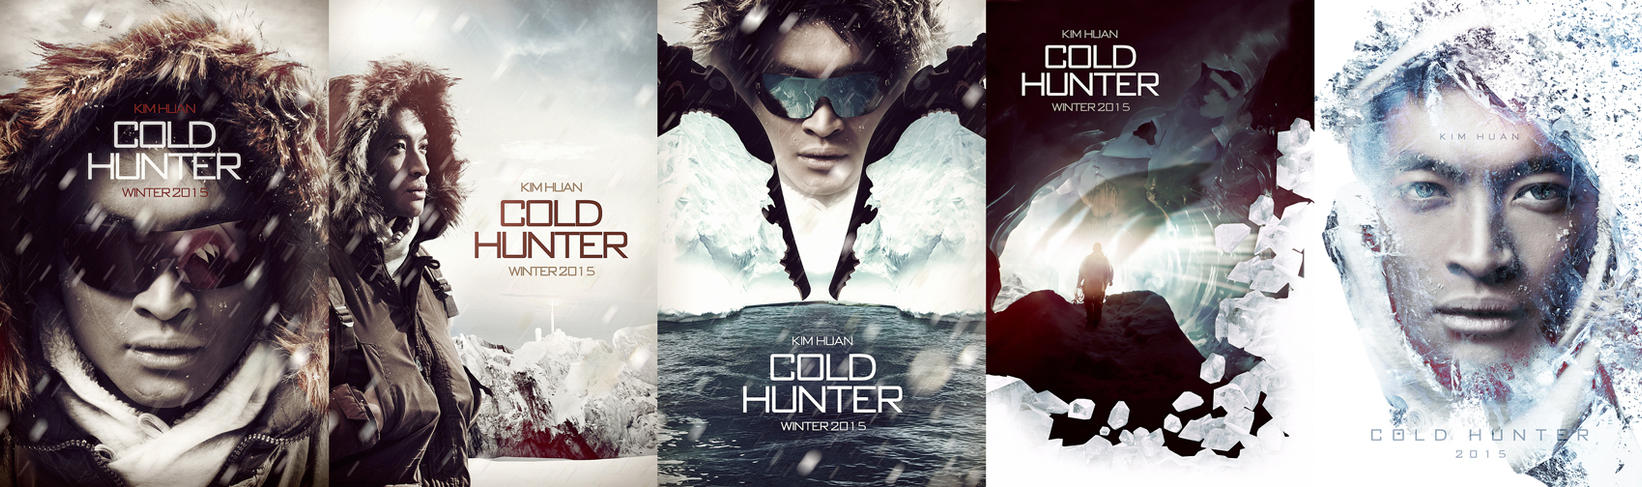 Cold Hunter Movie Posters by oroster